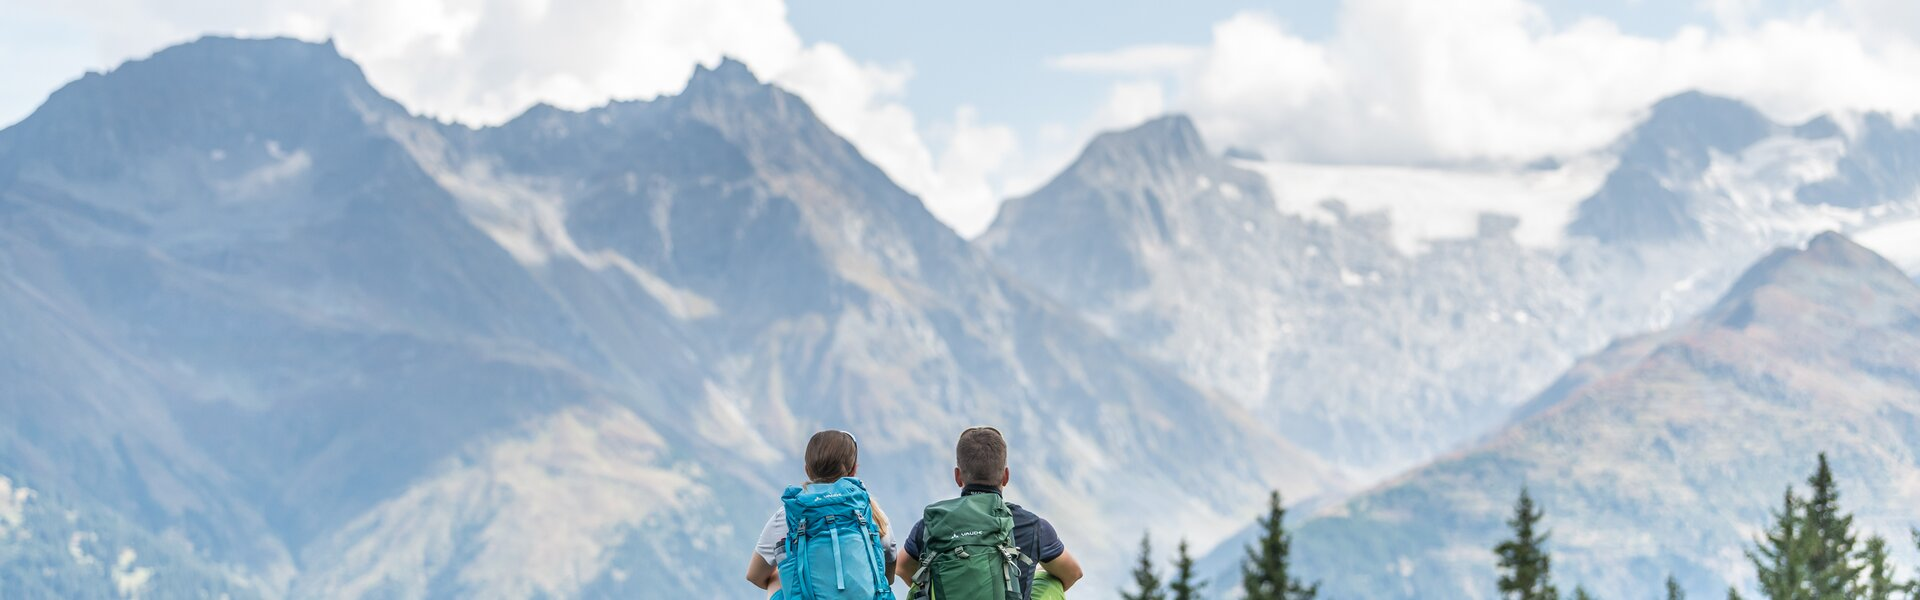 hiking trip with arosa card | © Mattias Nutt Photography